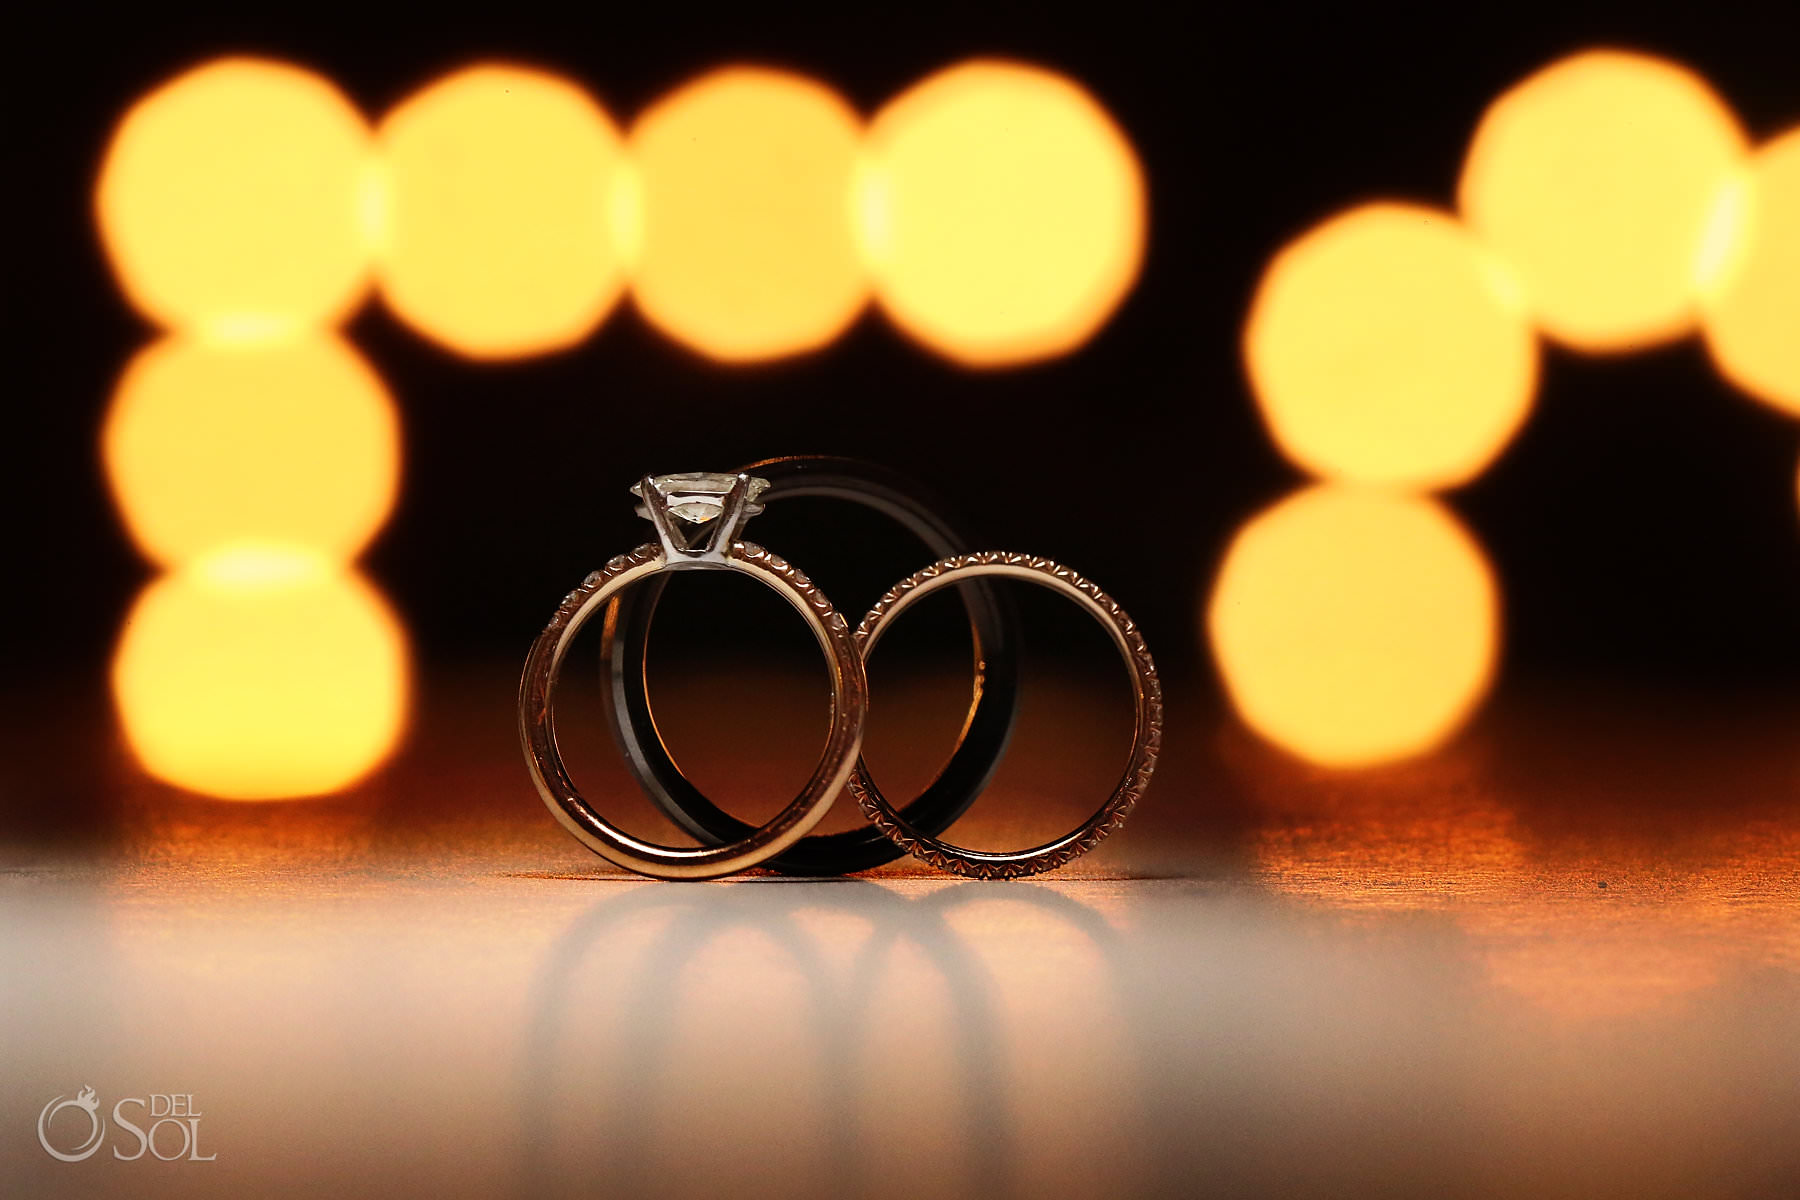 Andaz Mayakoba Wedding ring photo